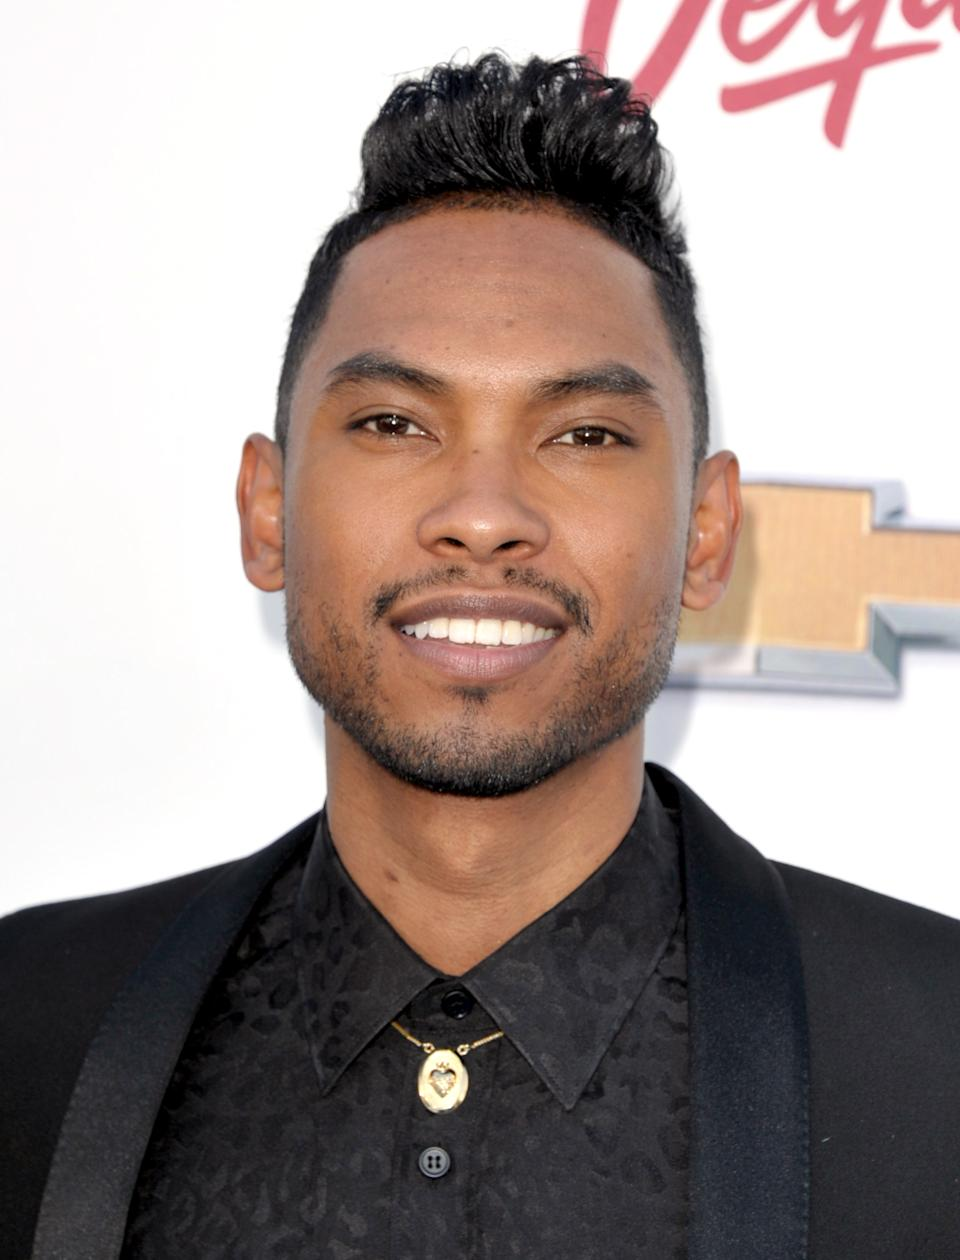 Miguel arrives at the Billboard Music Awards at the MGM Grand Garden Arena on Sunday, May 19, 2013 in Las Vegas. (Photo by John Shearer/Invision/AP)